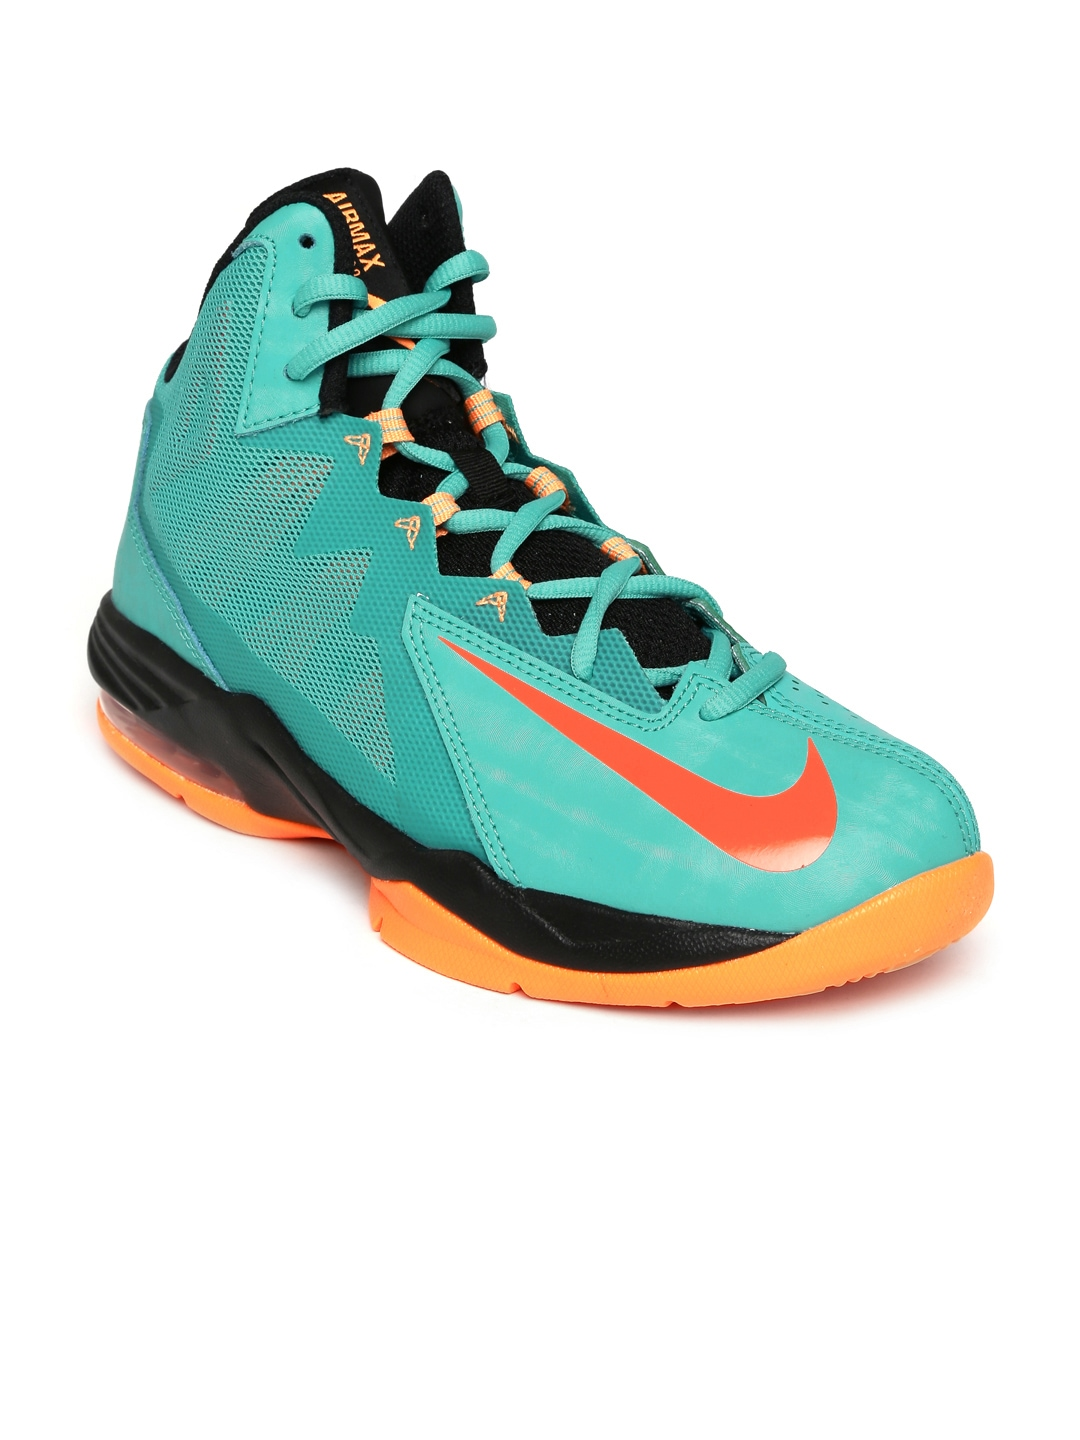 Mens Football Shoes Online India